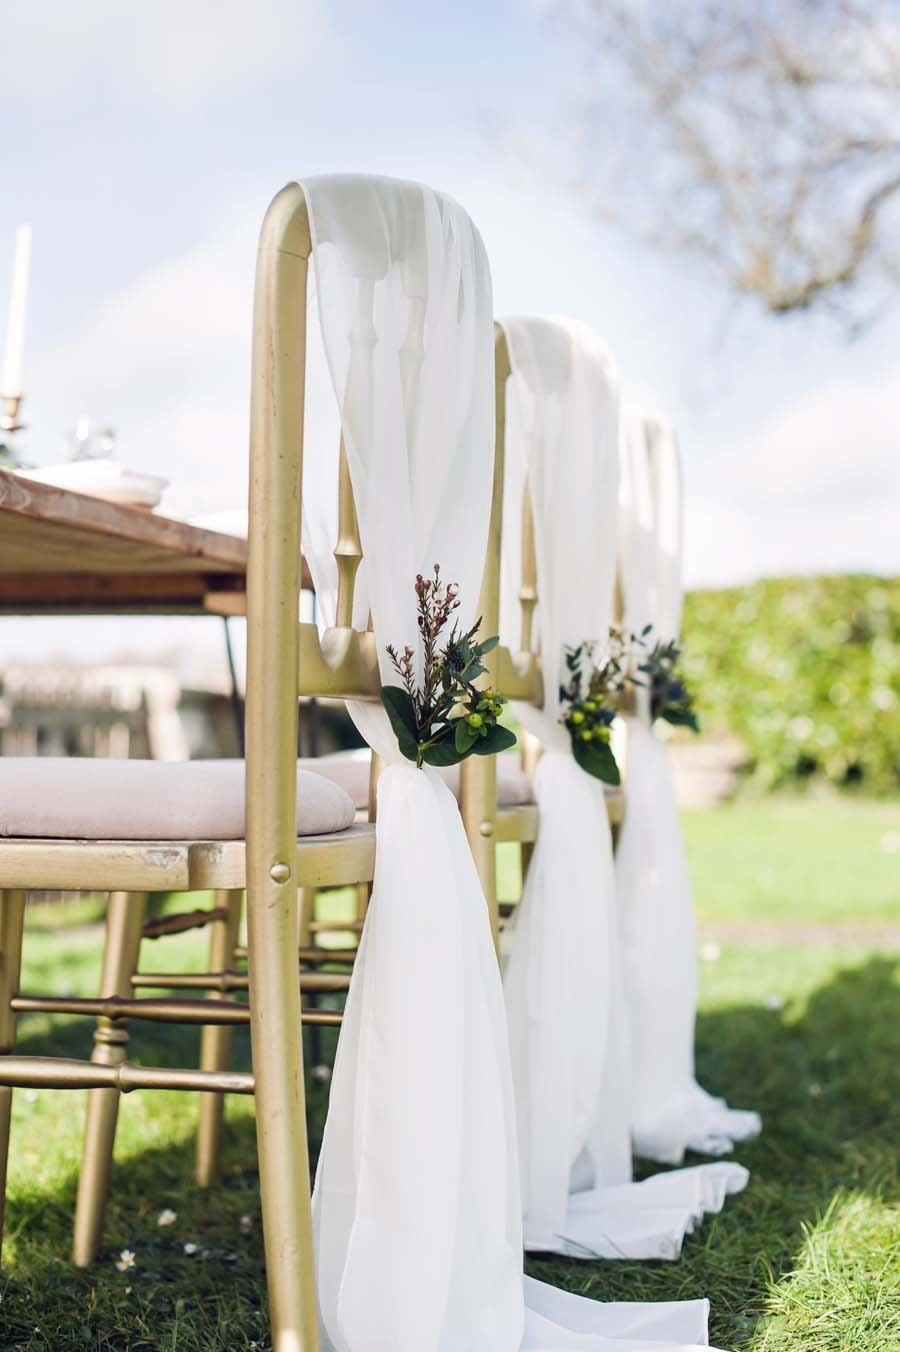 Uncategorized outdoor vintage glam wedding rustic wedding chic - Planning The Perfect Rustic Glam Wedding These Romantic Wedding Decor Ideas Are Bound To Inspire